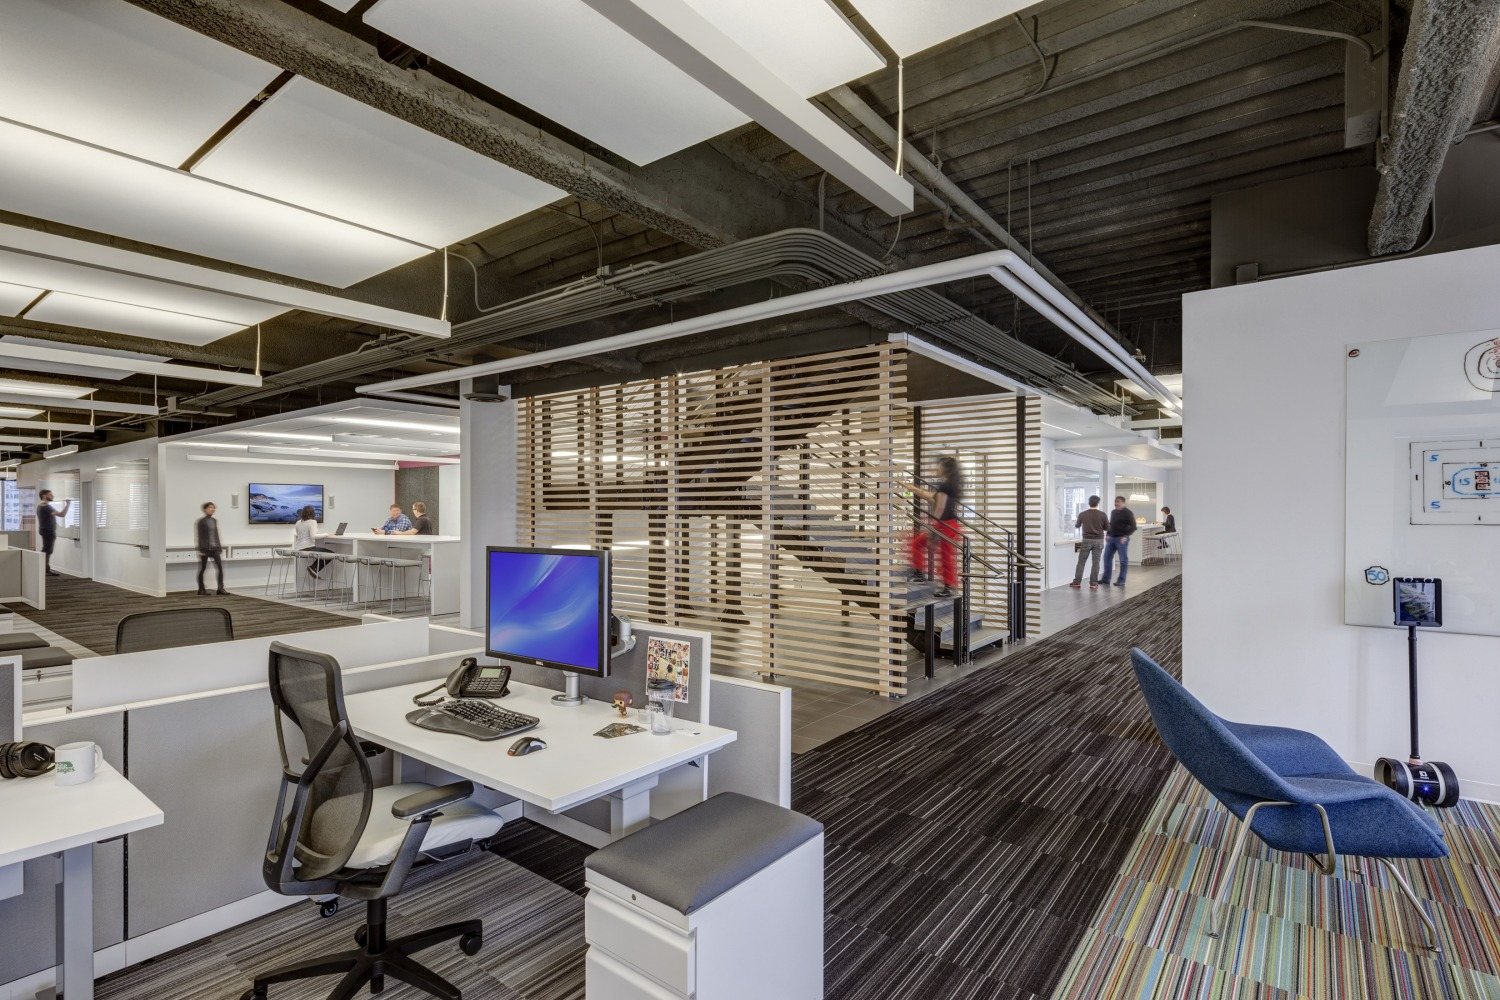 The Impetus For Renovation Reconfigured Staircase Connects Upper And Lower Floors Workstations Ancillary Furniture Are By Allsteel COI